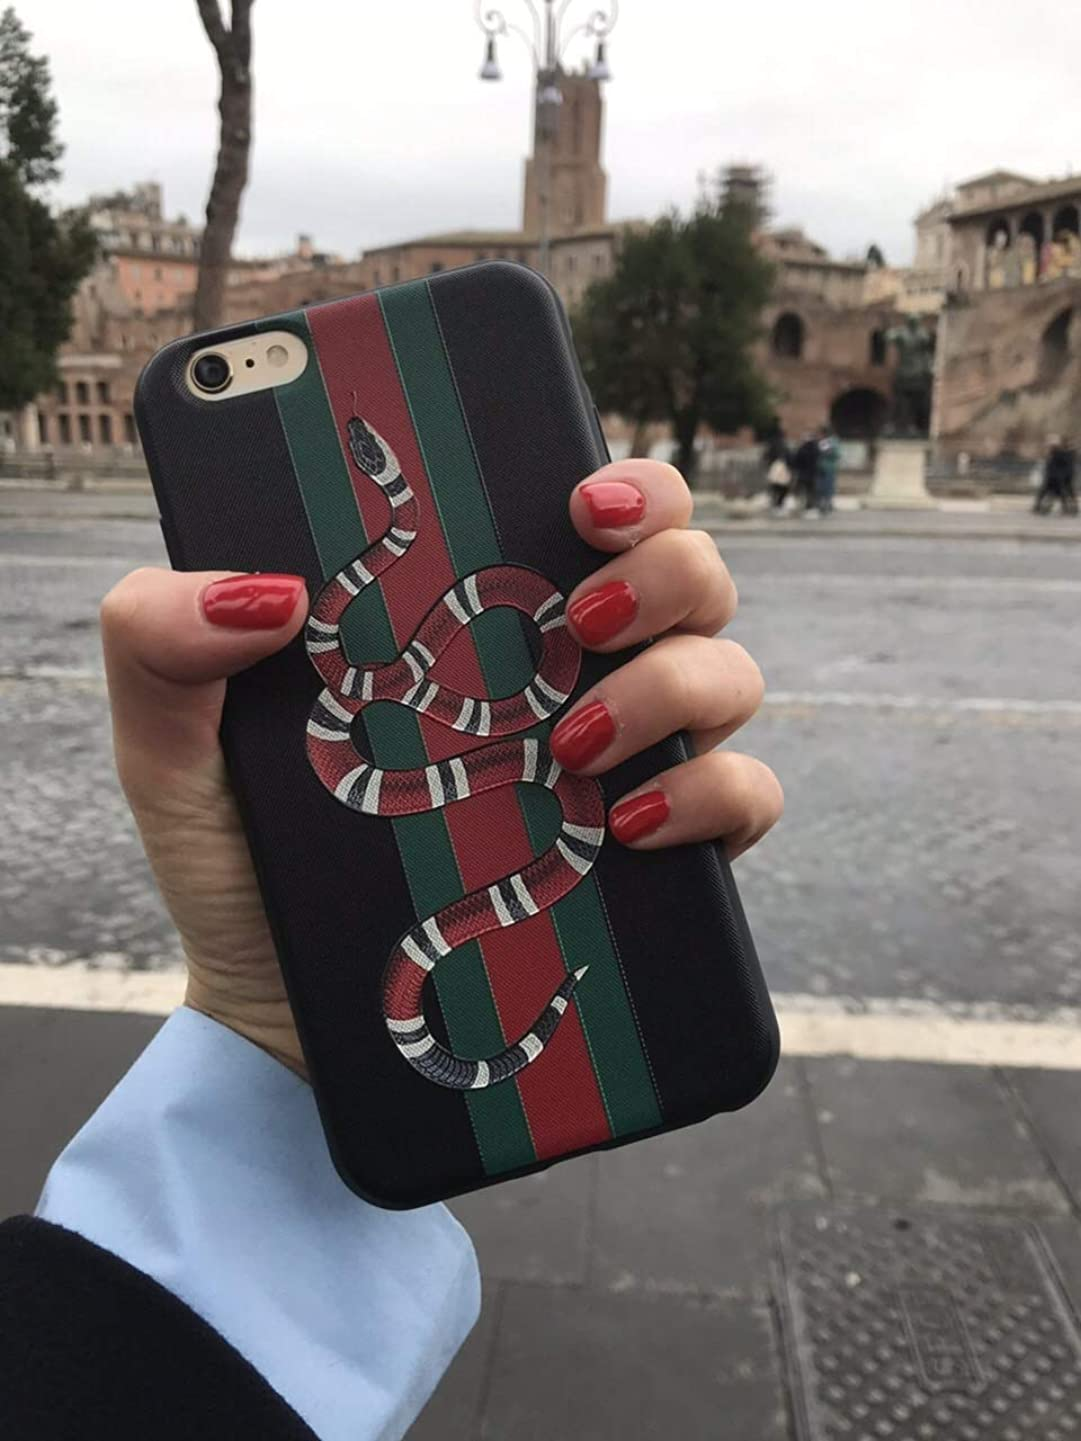 Fashion G Style -Glass Protective Case Cover for iPhone 7 Plus iPhone 8 Plus Only 5.5 Inches (Red Snake)